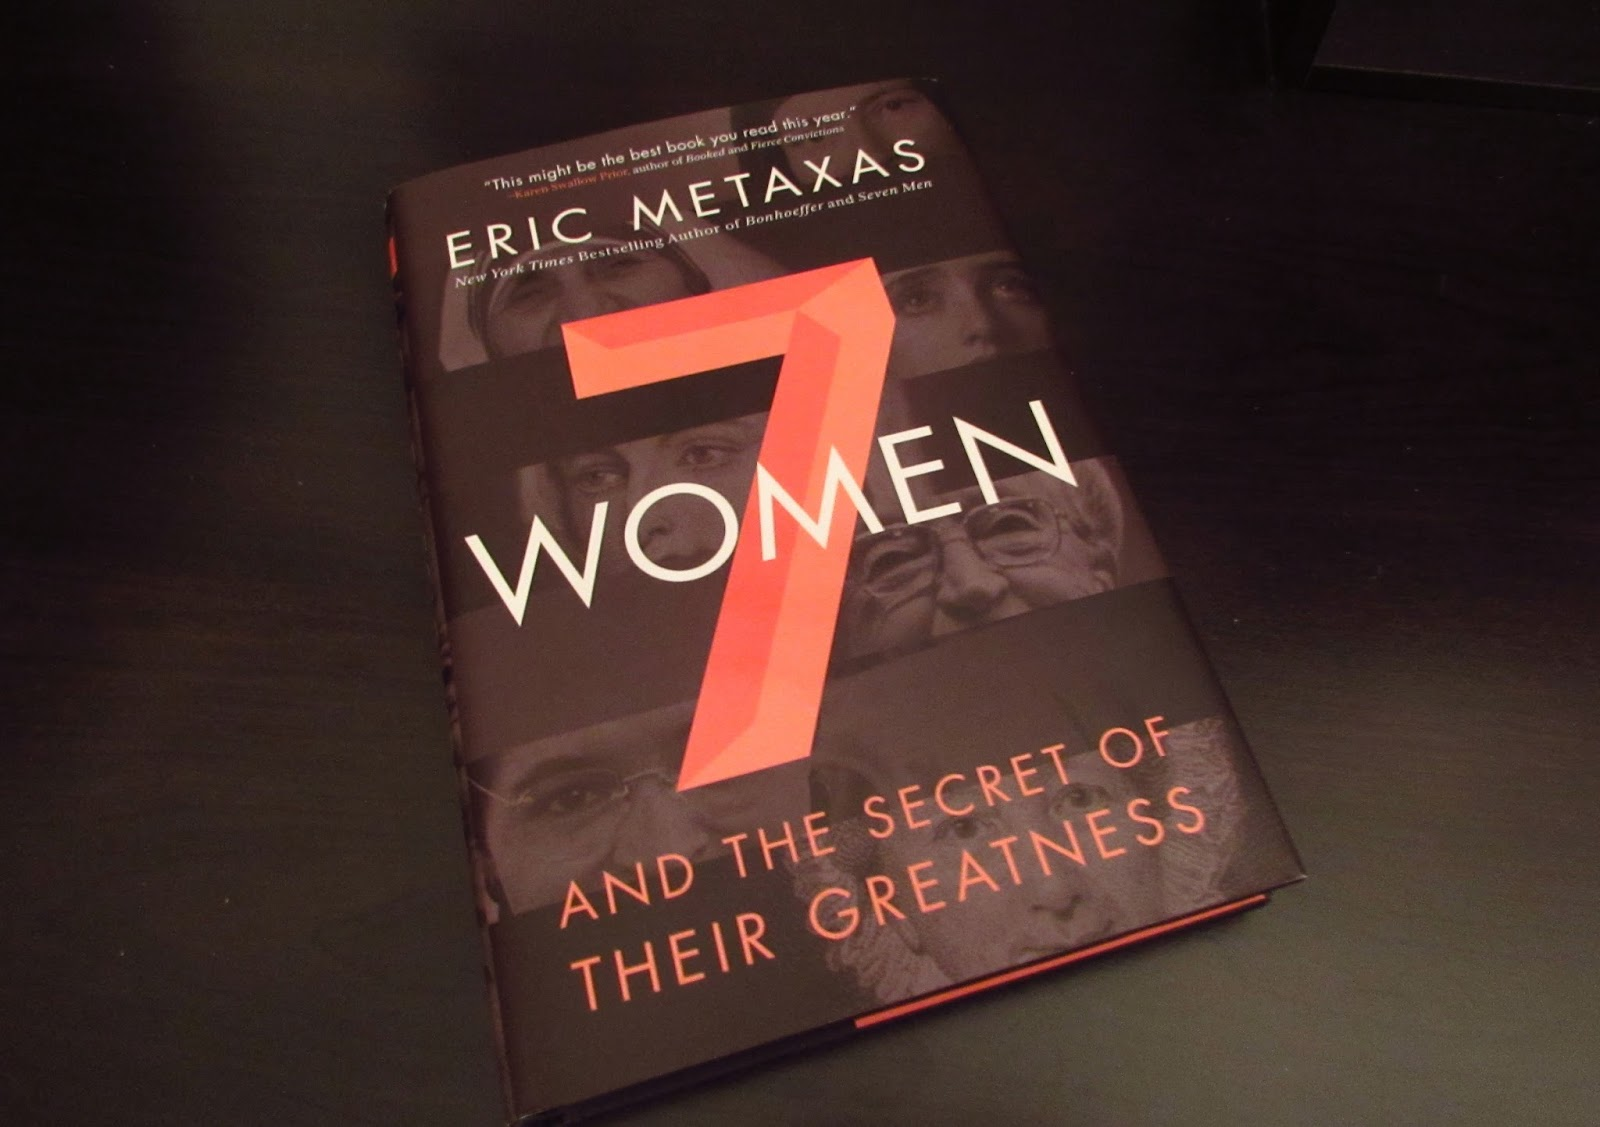 Finding Eloquence Book Review Seven Women And The Secret Of Their